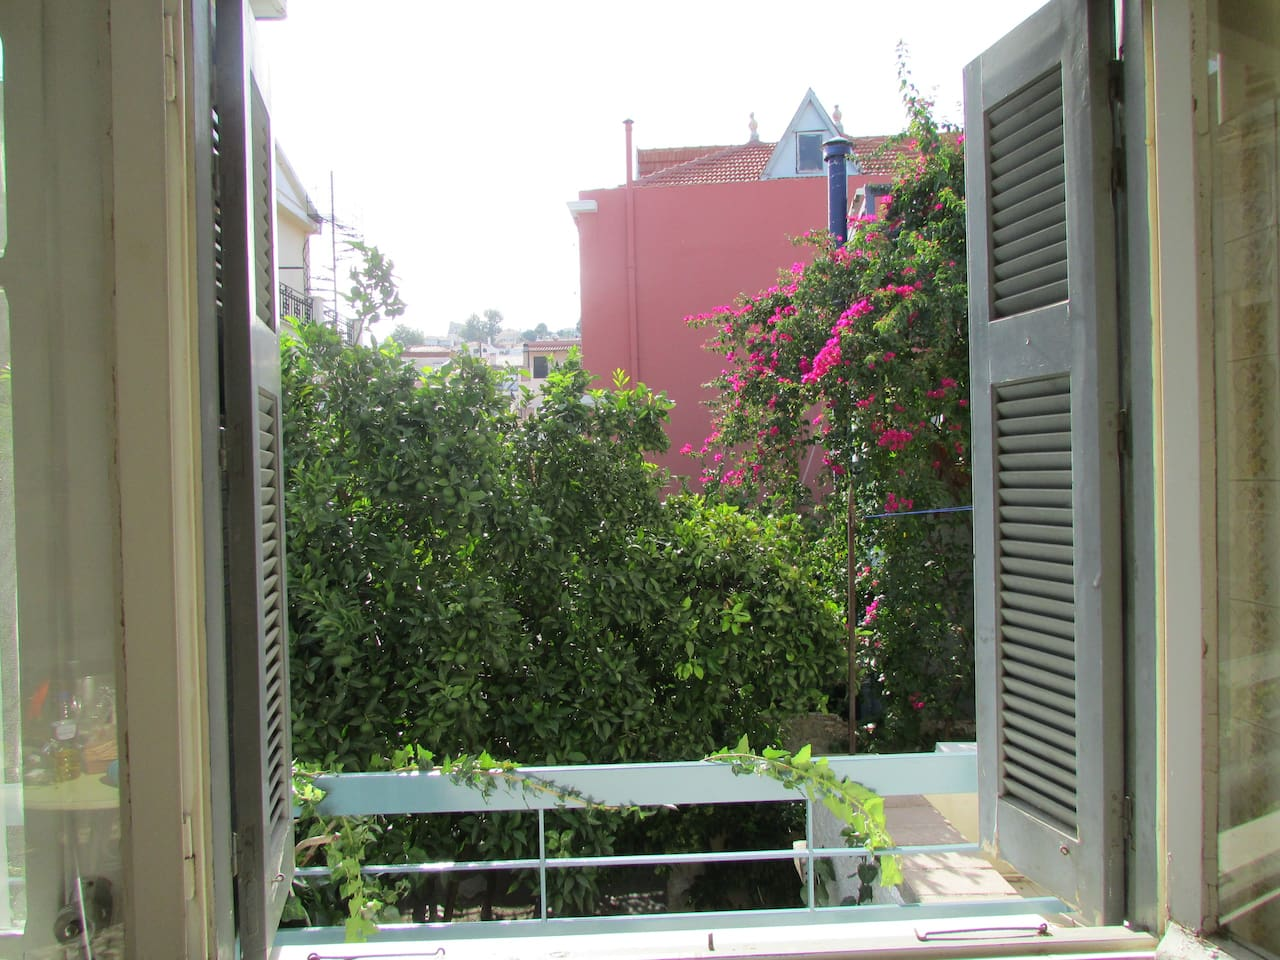 Summer view from rear balcony